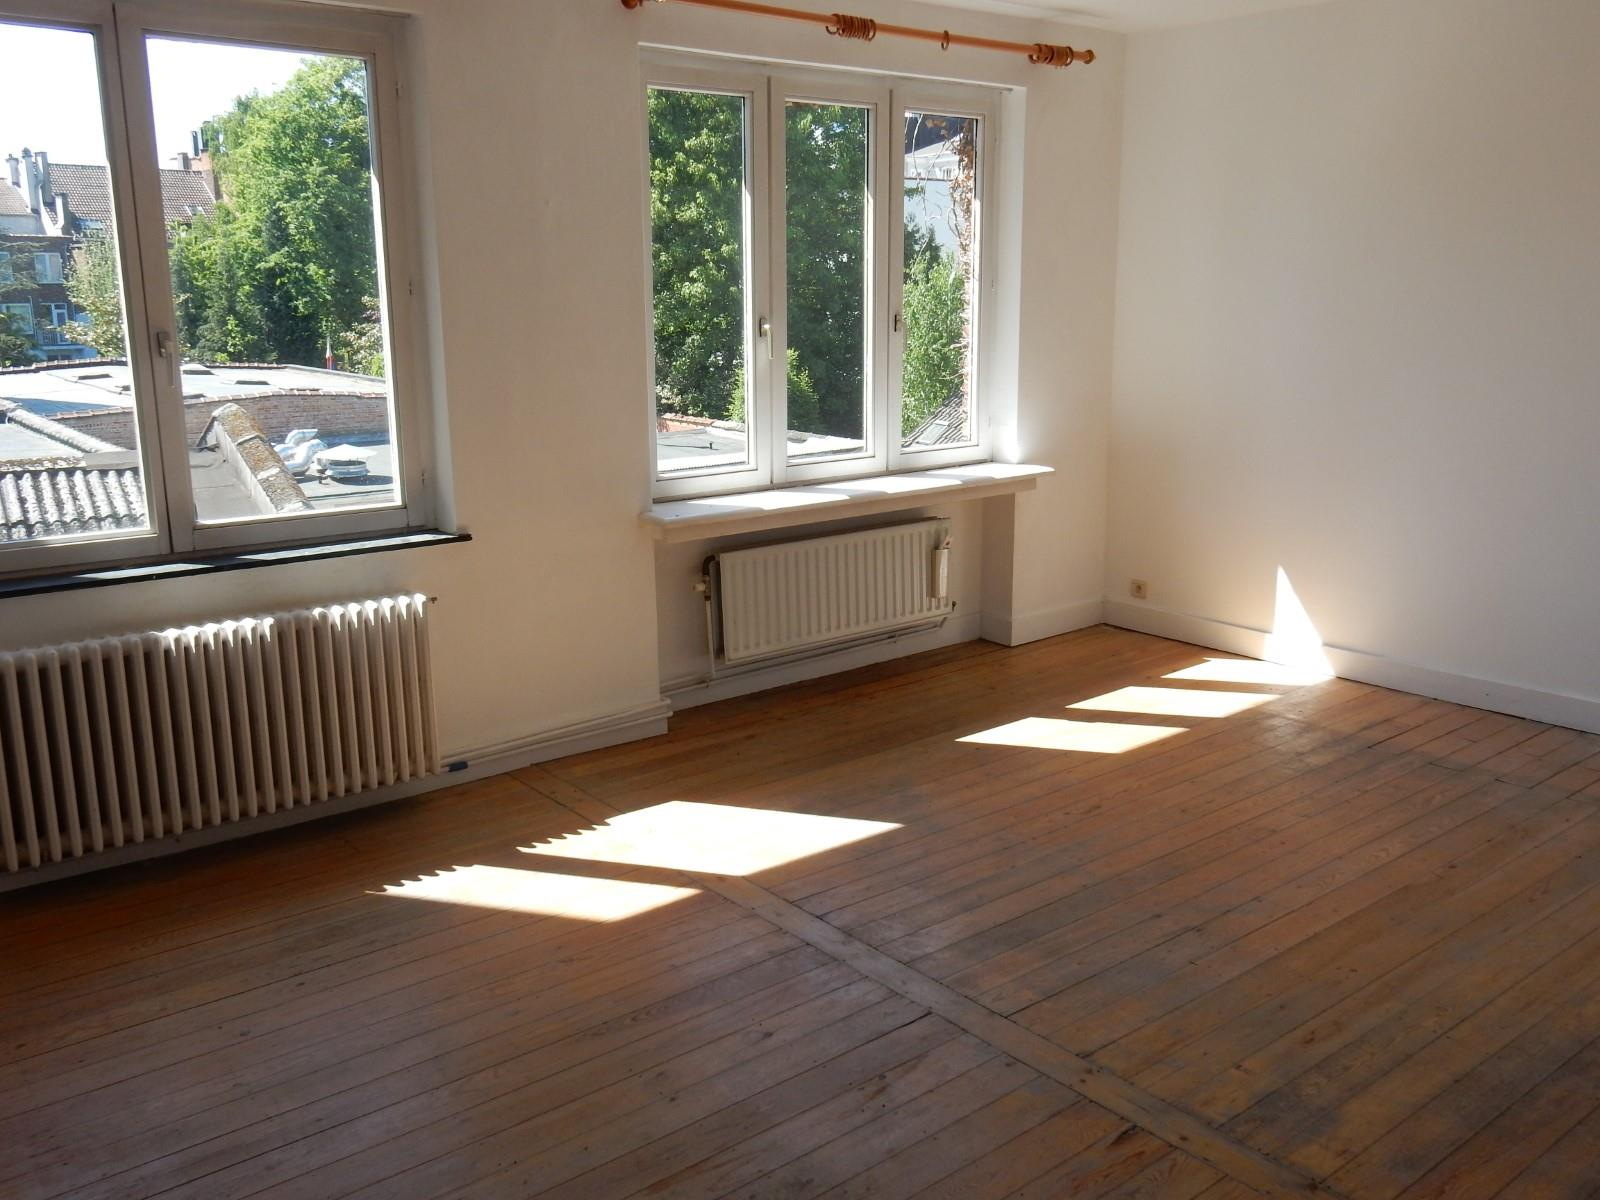 House - Uccle - #3450452-7